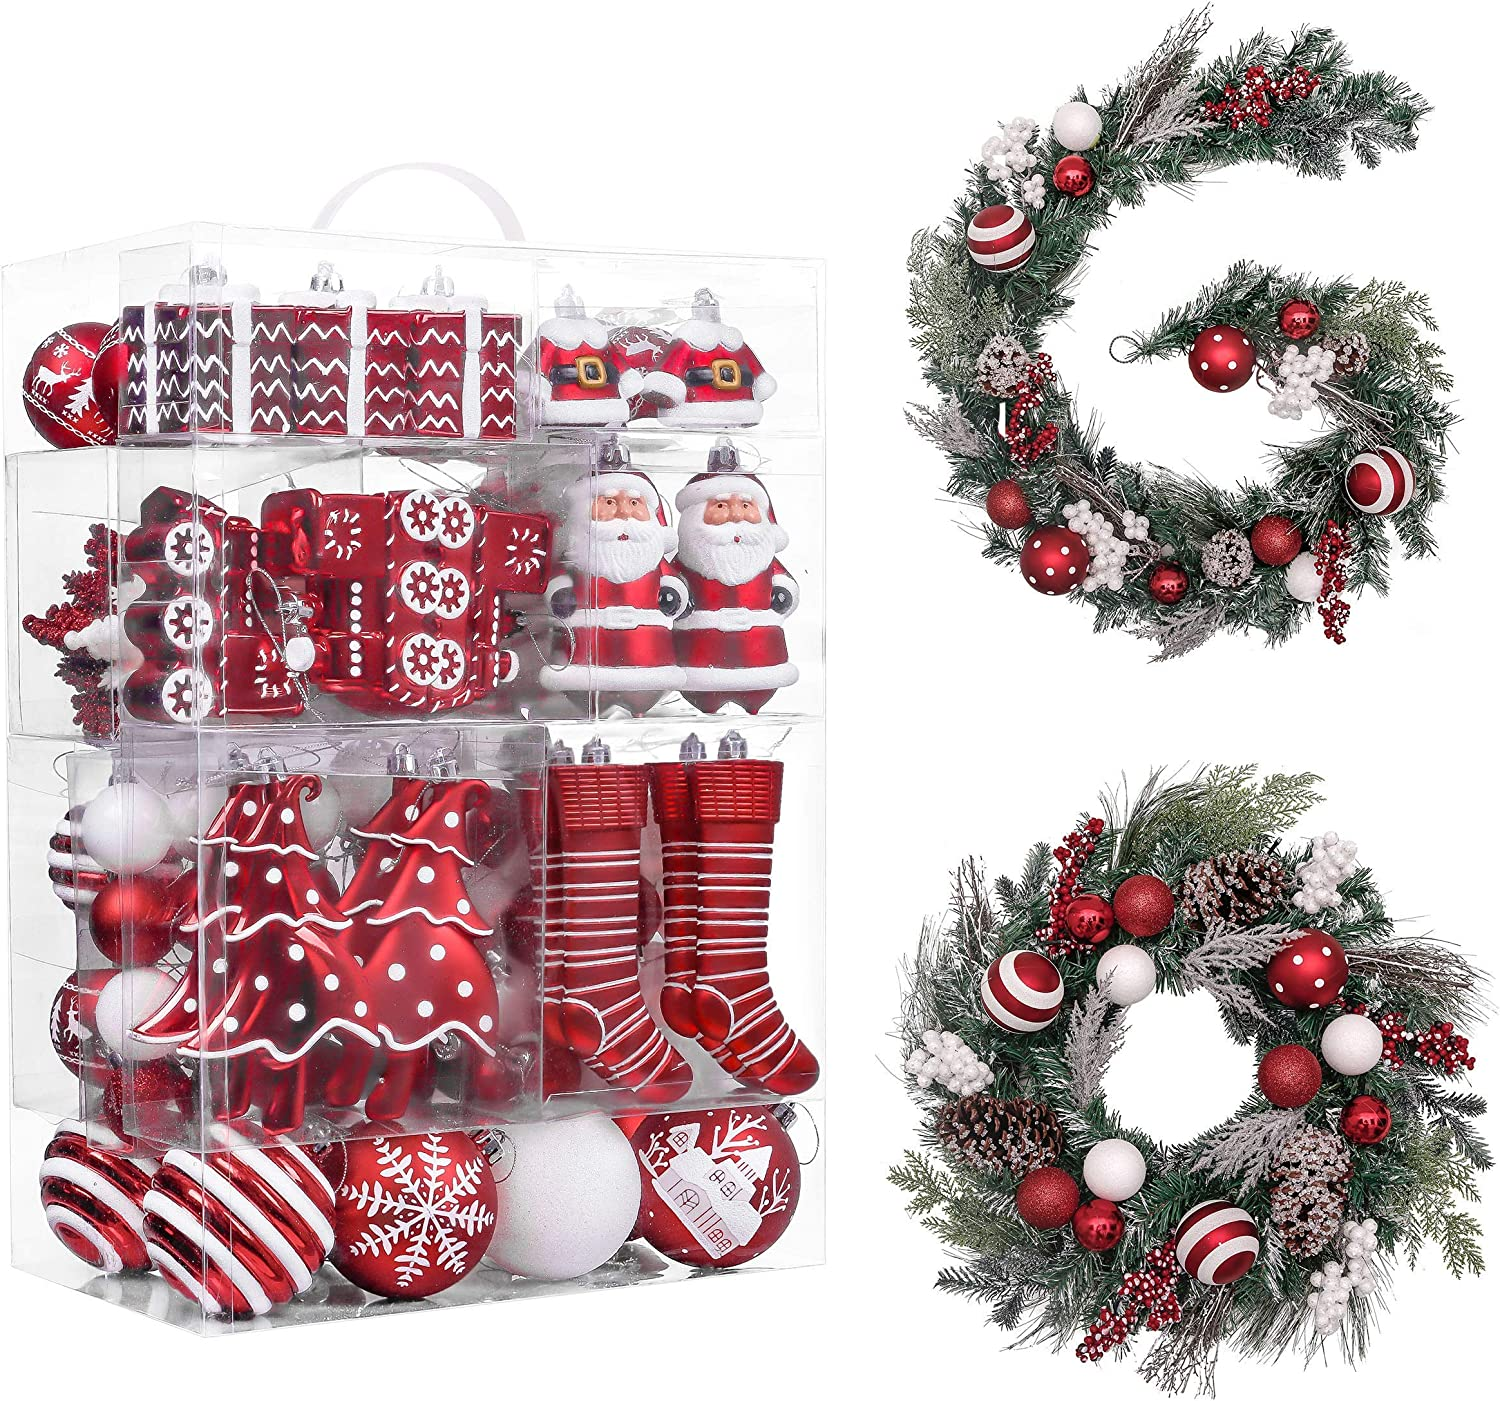 Wreaths, Garlands, Ornament Bundles by Valery Madelyn